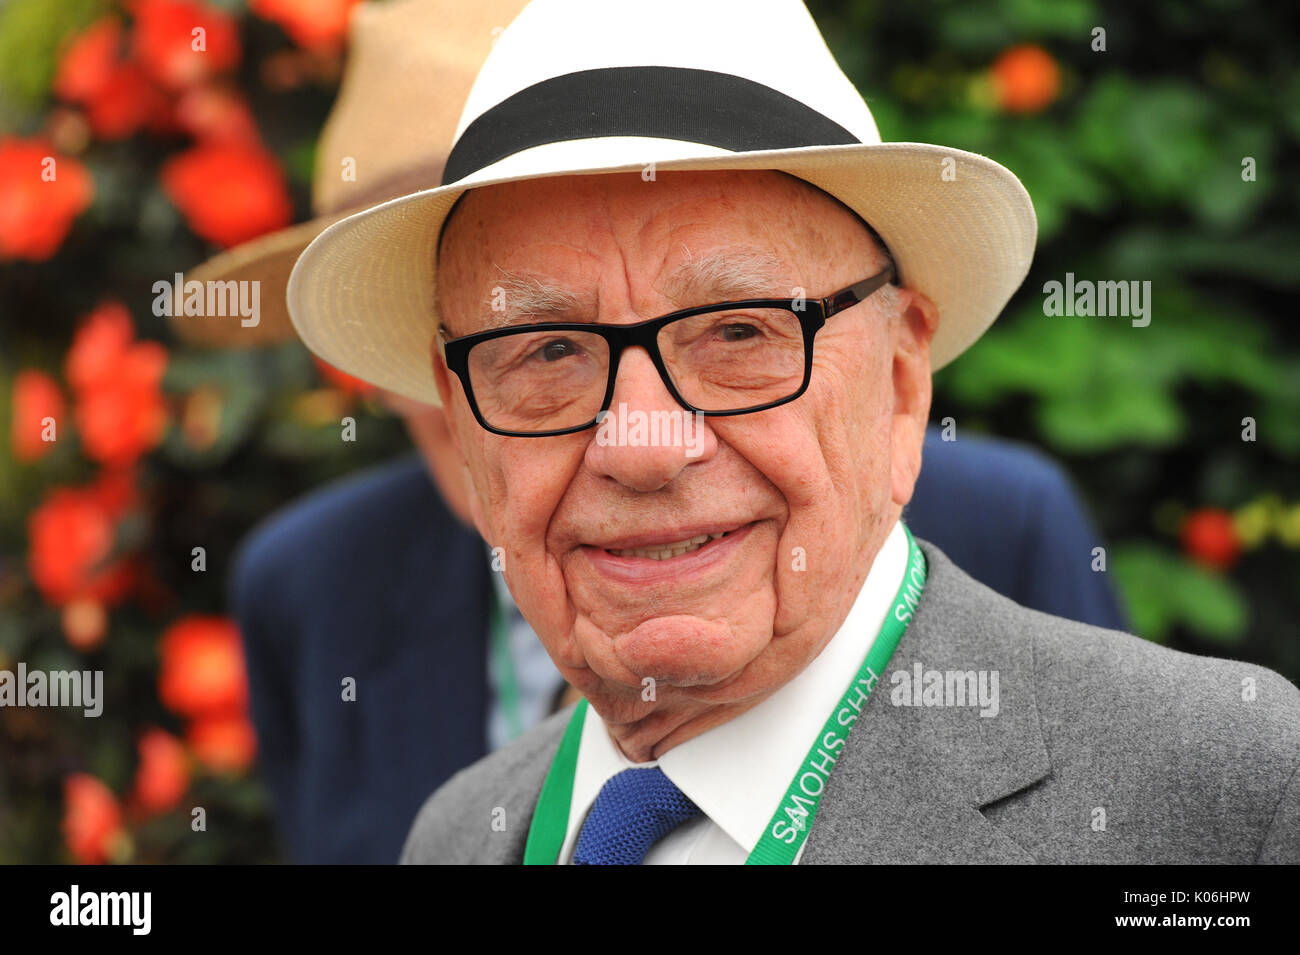 Rupert Murdoch the Australian-born American media mogul whose family own 21st Century Fox and News Corp. - Stock Image